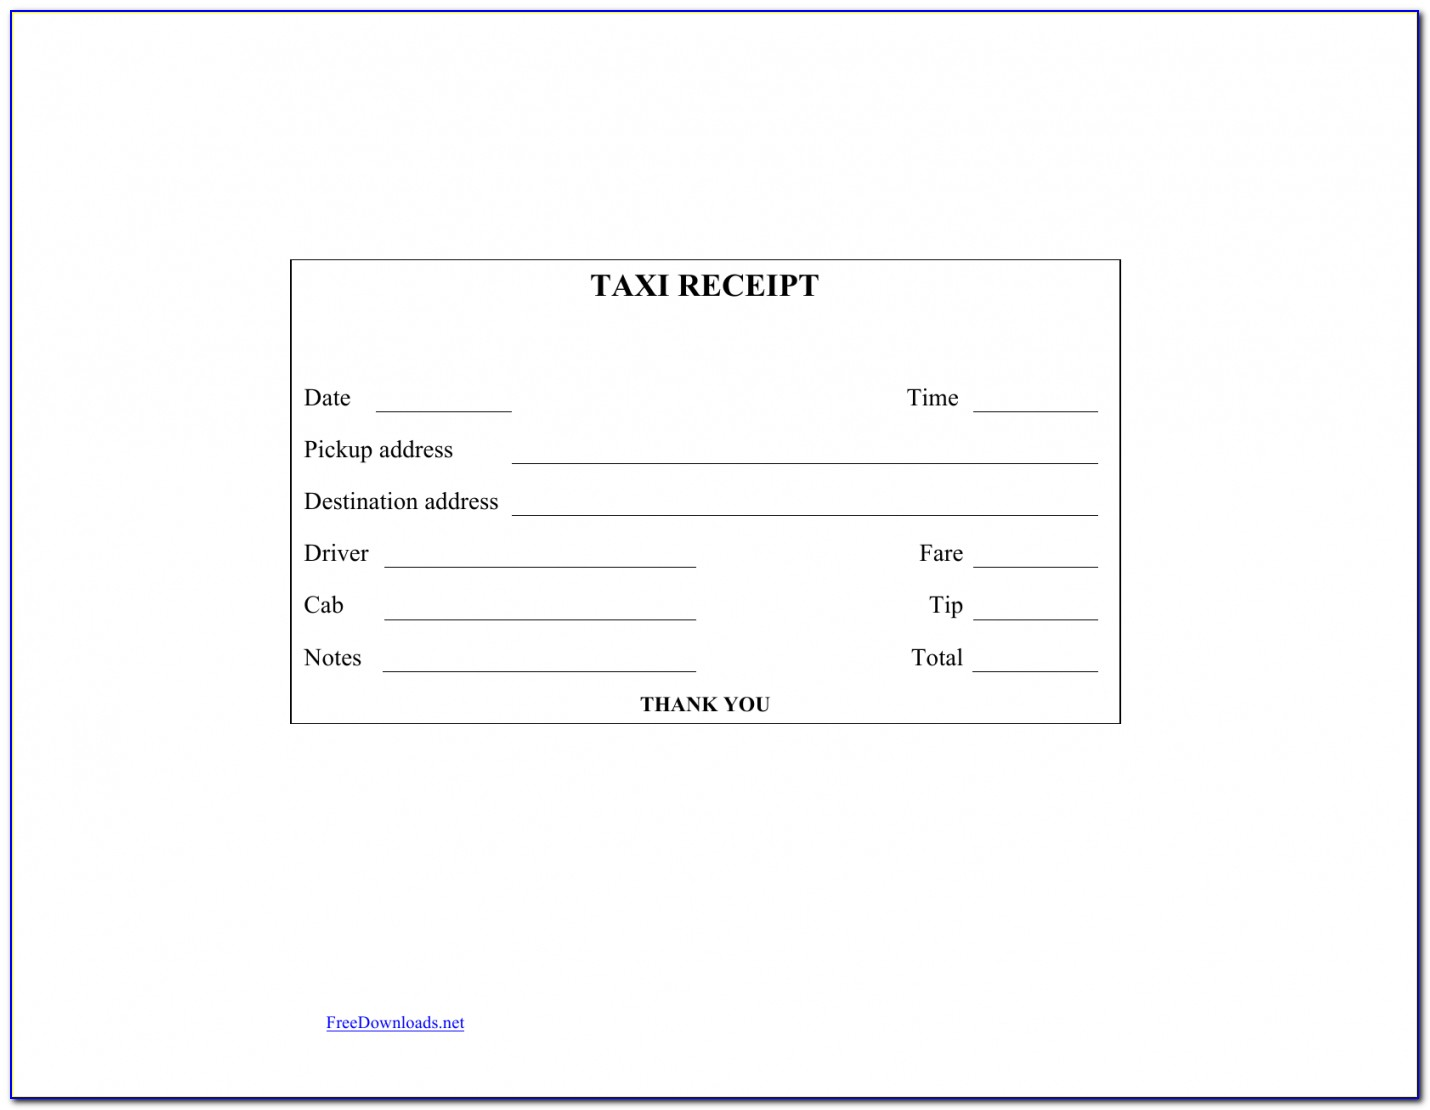 Download Blank Printable Taxi Cab Receipt Template Excel Pdf Taxi Invoice Template Vincegray2014